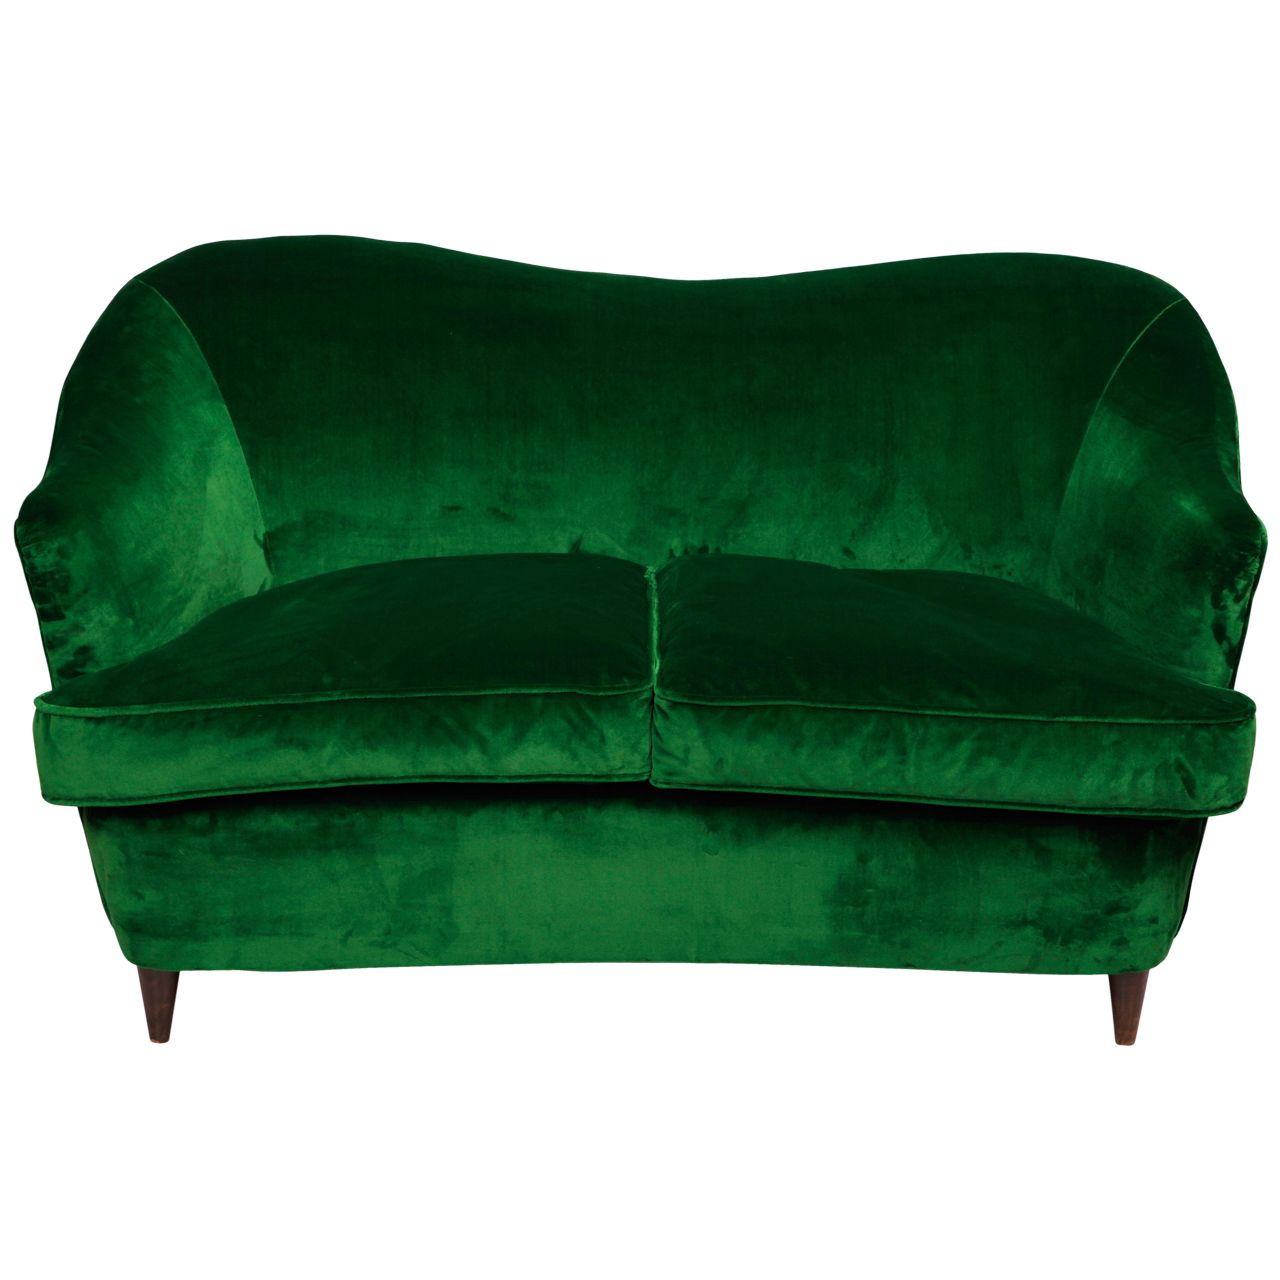 Little 1930s Curved Italian Sofa | Casa Heather | Italian sofa, Sofa ...